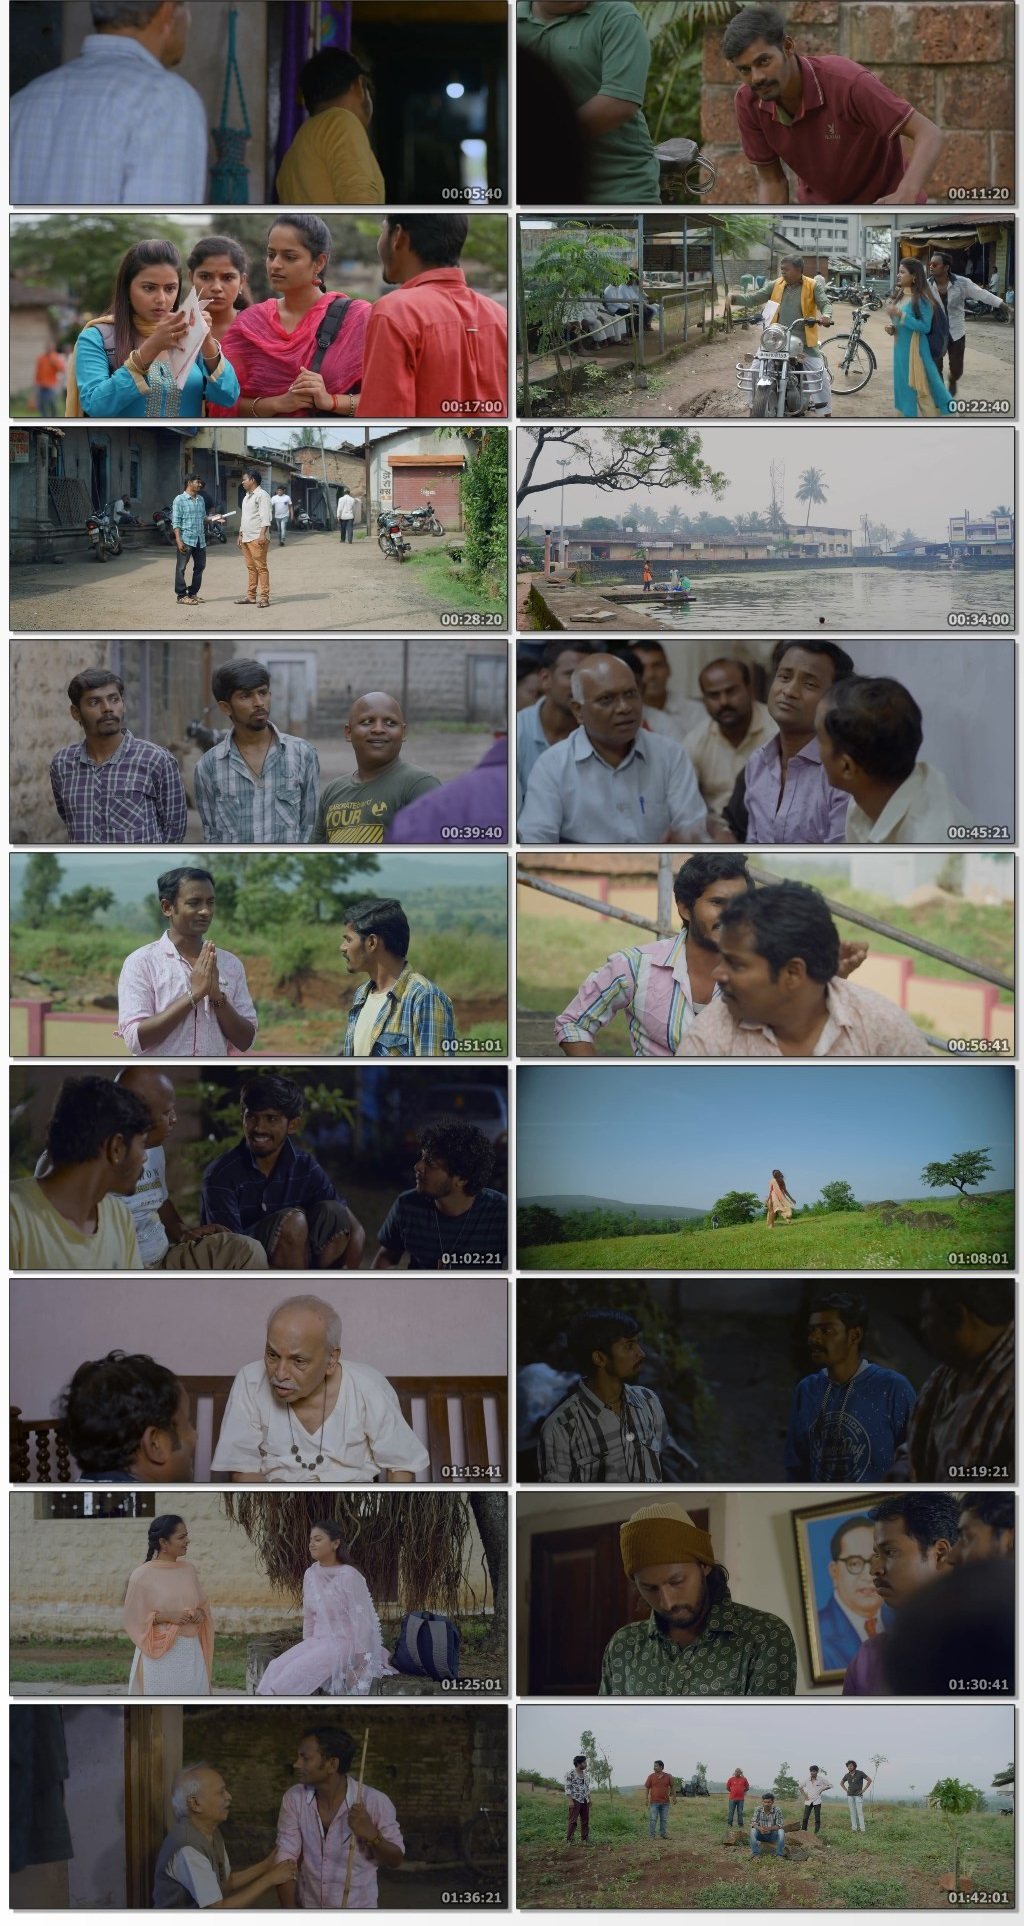 Gast-2021-Marathi-www-7-Star-HD-Solar-720p-WEB-DL-x264-ESubs-1-mkv-thumbs